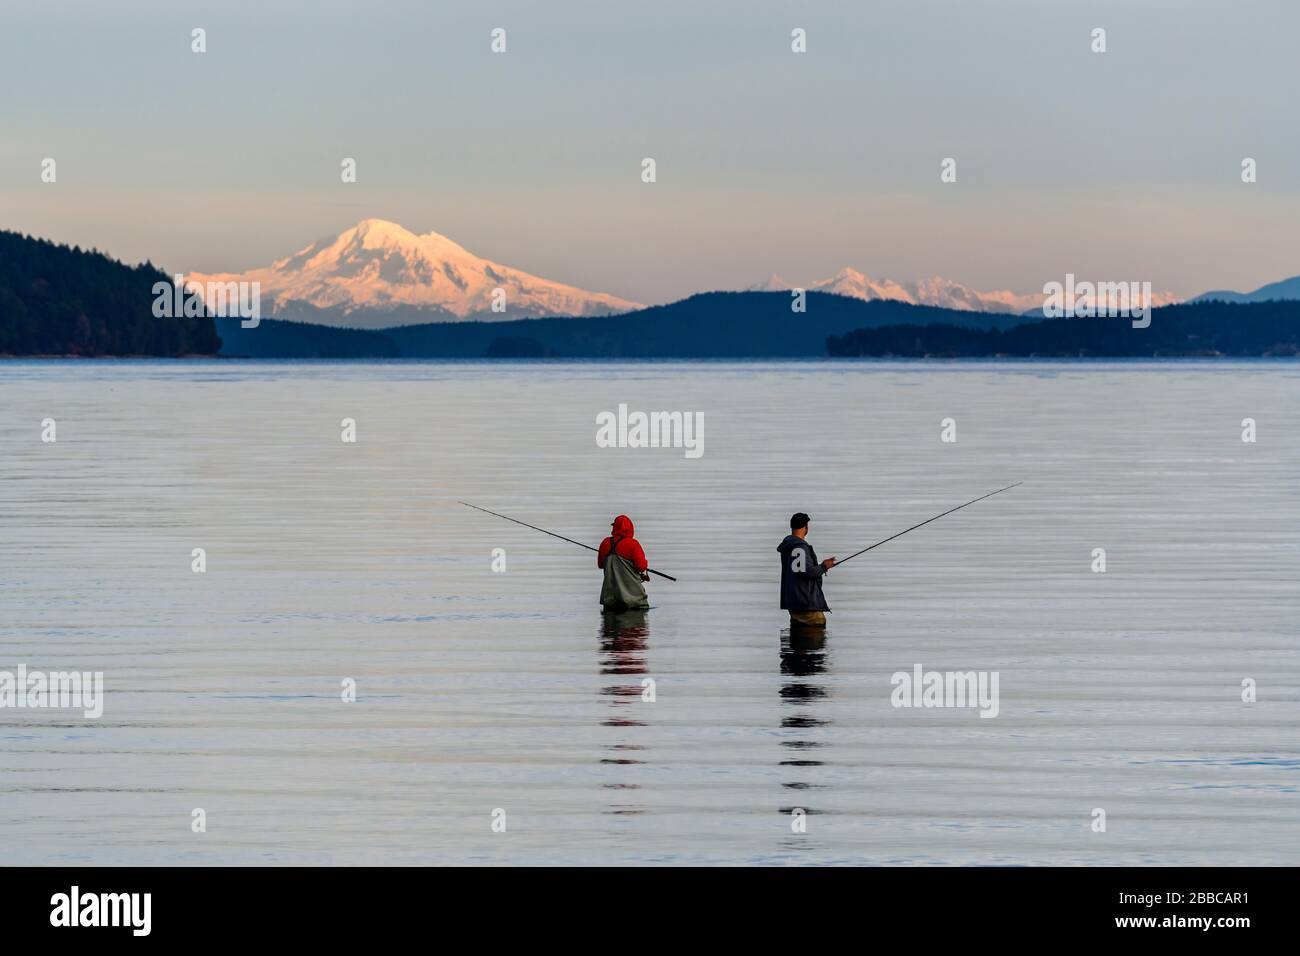 Two men ocean fishing at Cherry Point Beach near Cowichan Bay, British Columbia.  Mt. Baker in Washington State is in the background. Stock Photo